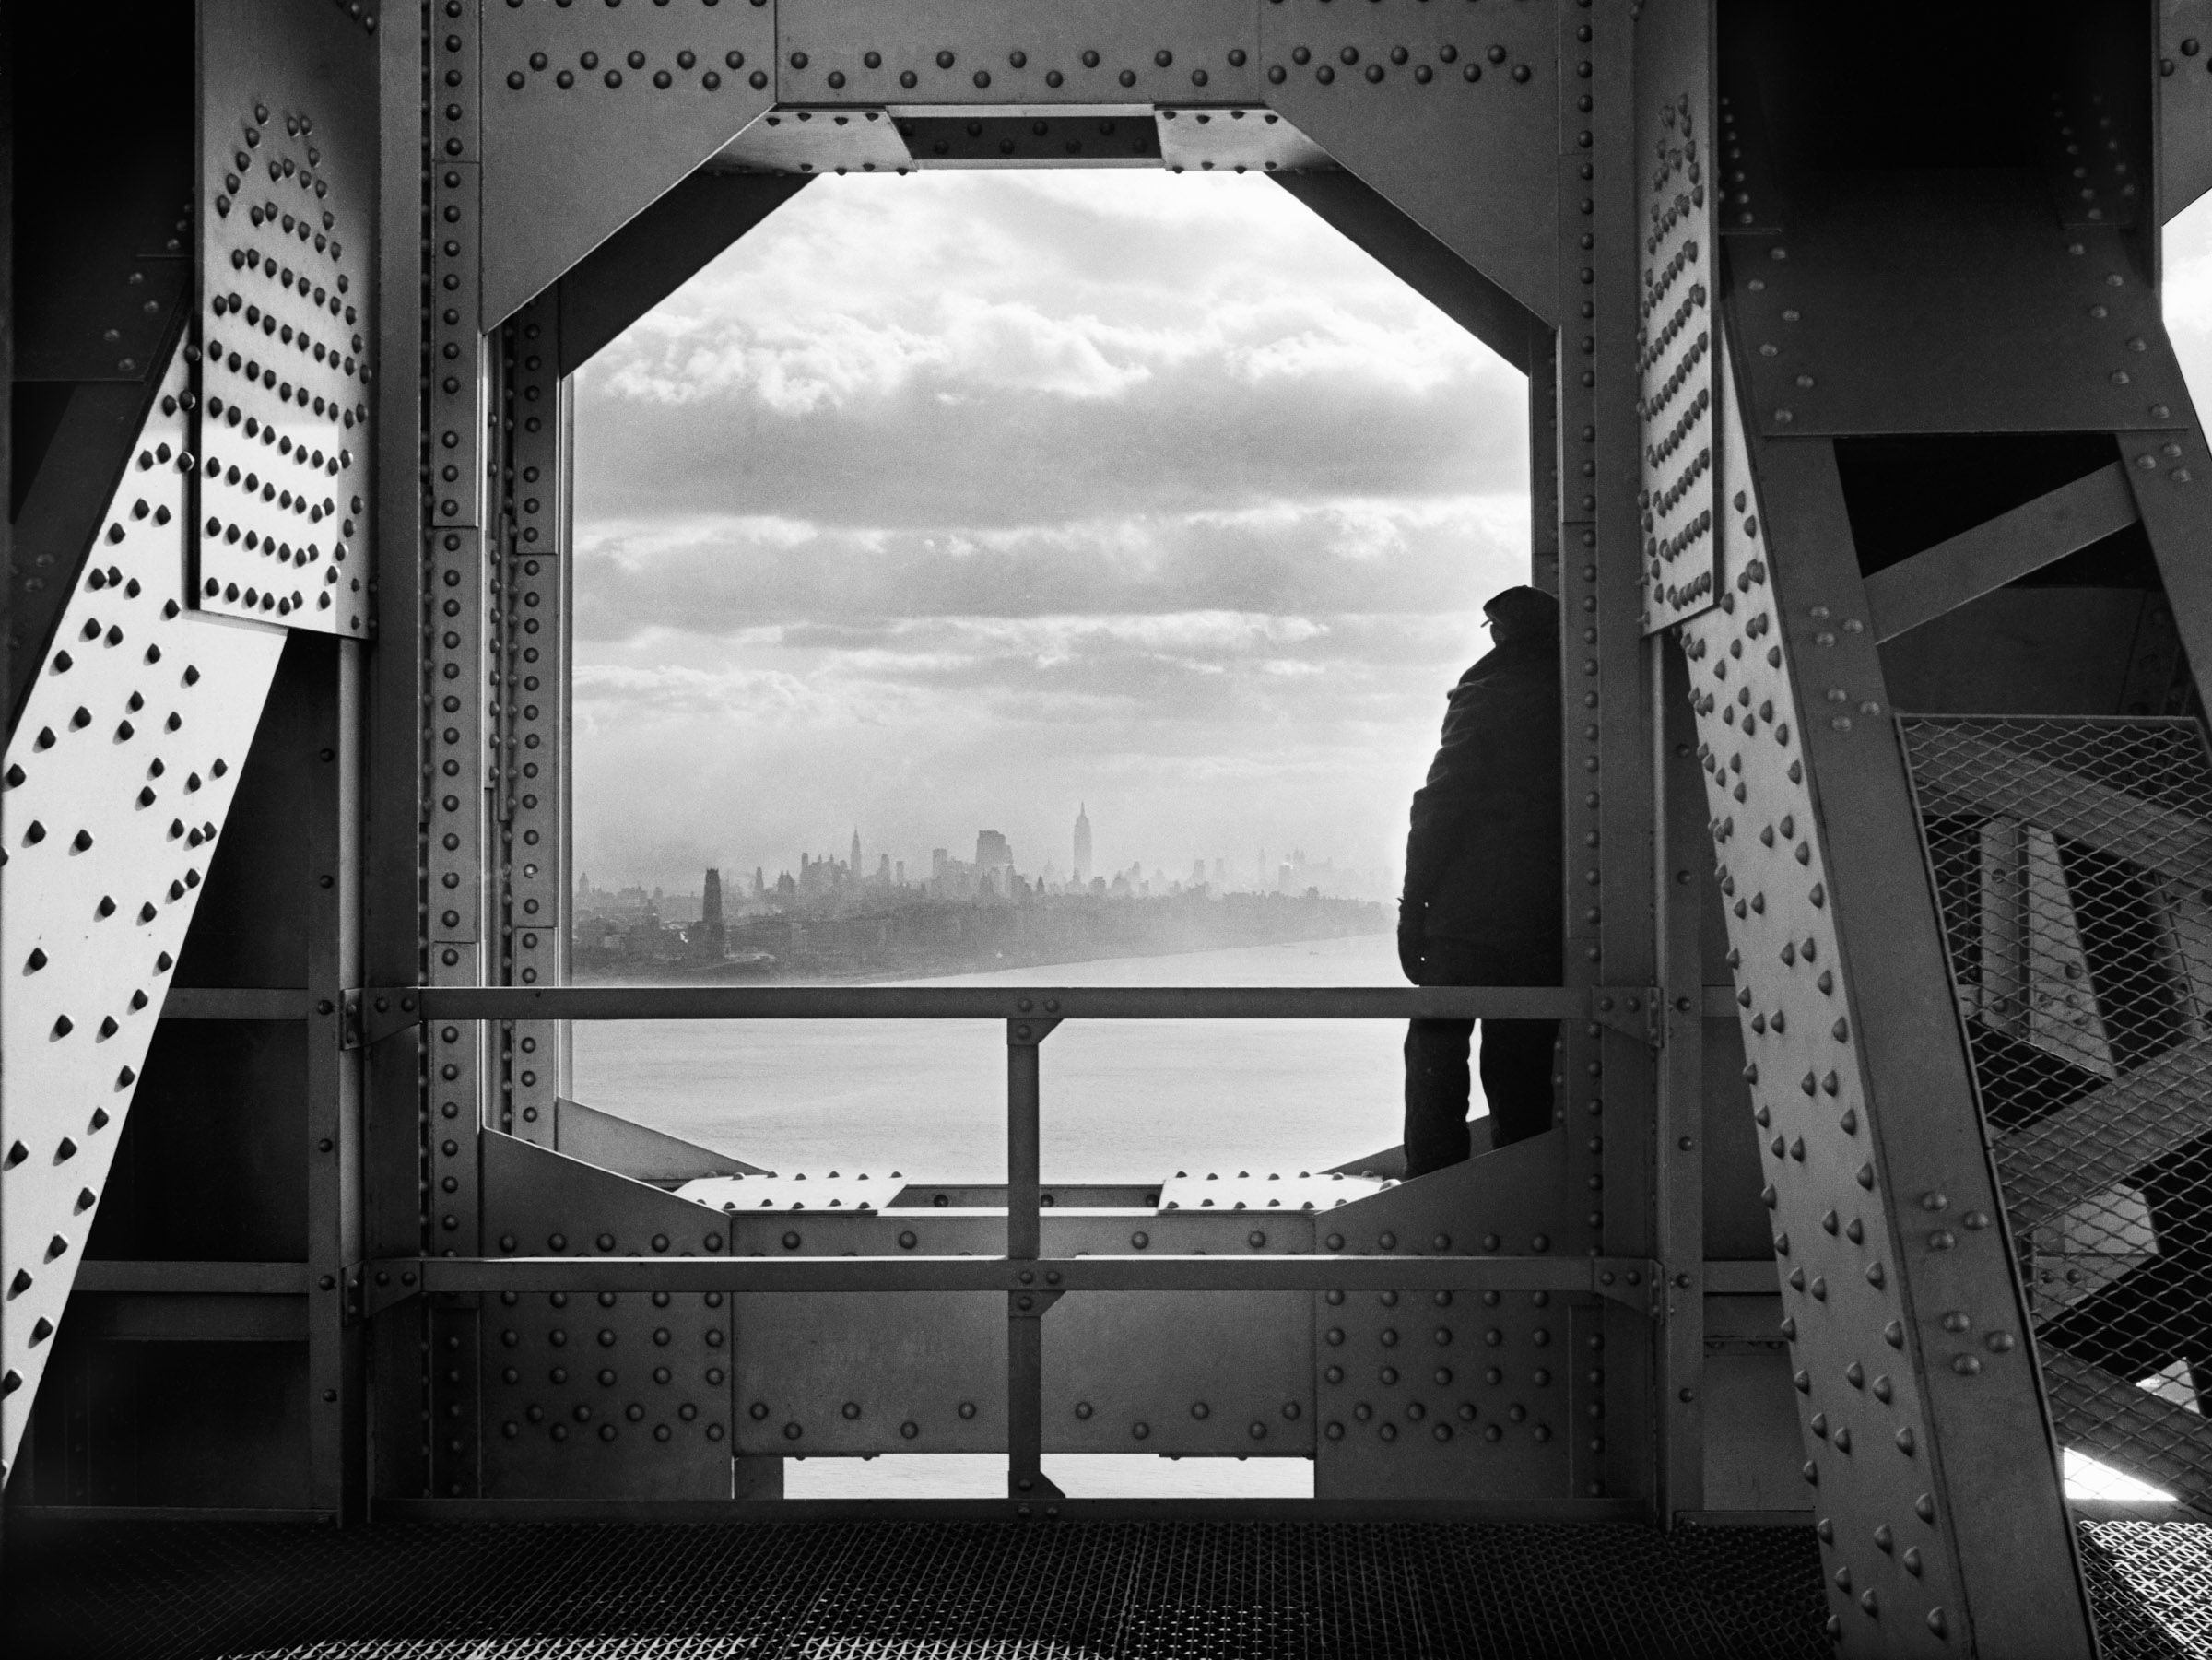 Worker on the New York tower of the George Washington Bridge. Date: December 22, 1936. Photographer: Jack Rosenzwieg. WPA-FWP Collection, NYC Municipal Archives.